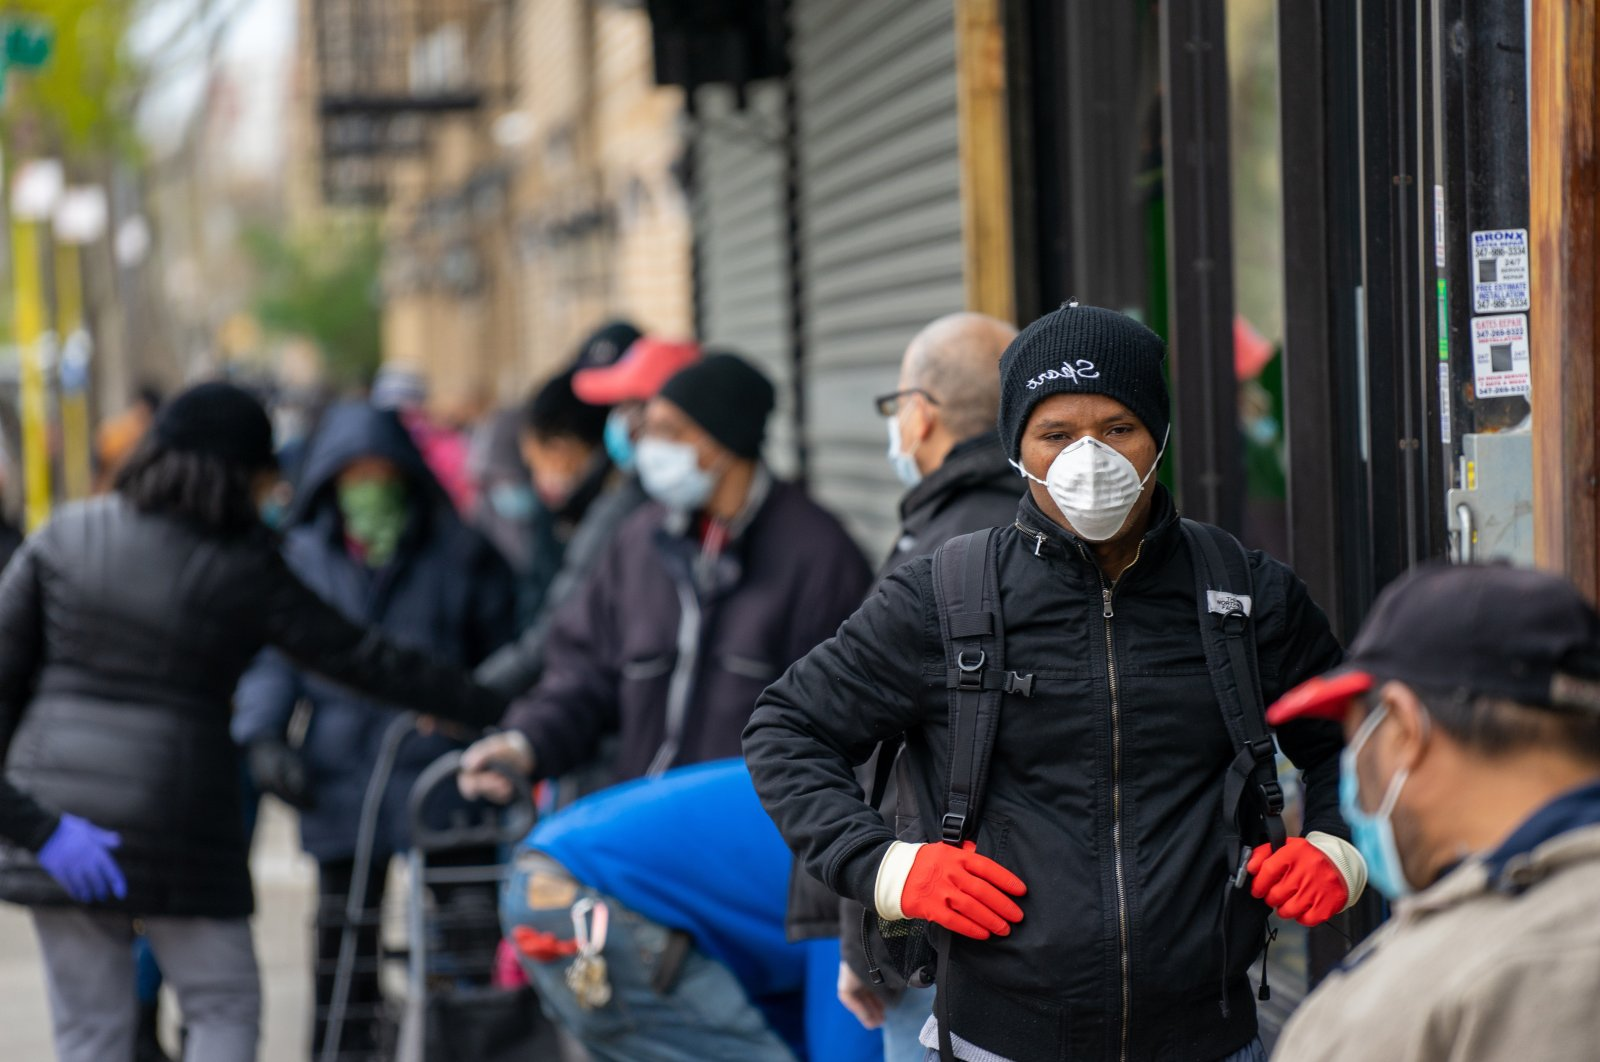 People wait in line for meals to be distributed at the Bronx Draft House on April 23, 2020, in the Bronx borough of New York City. (Getty Images)